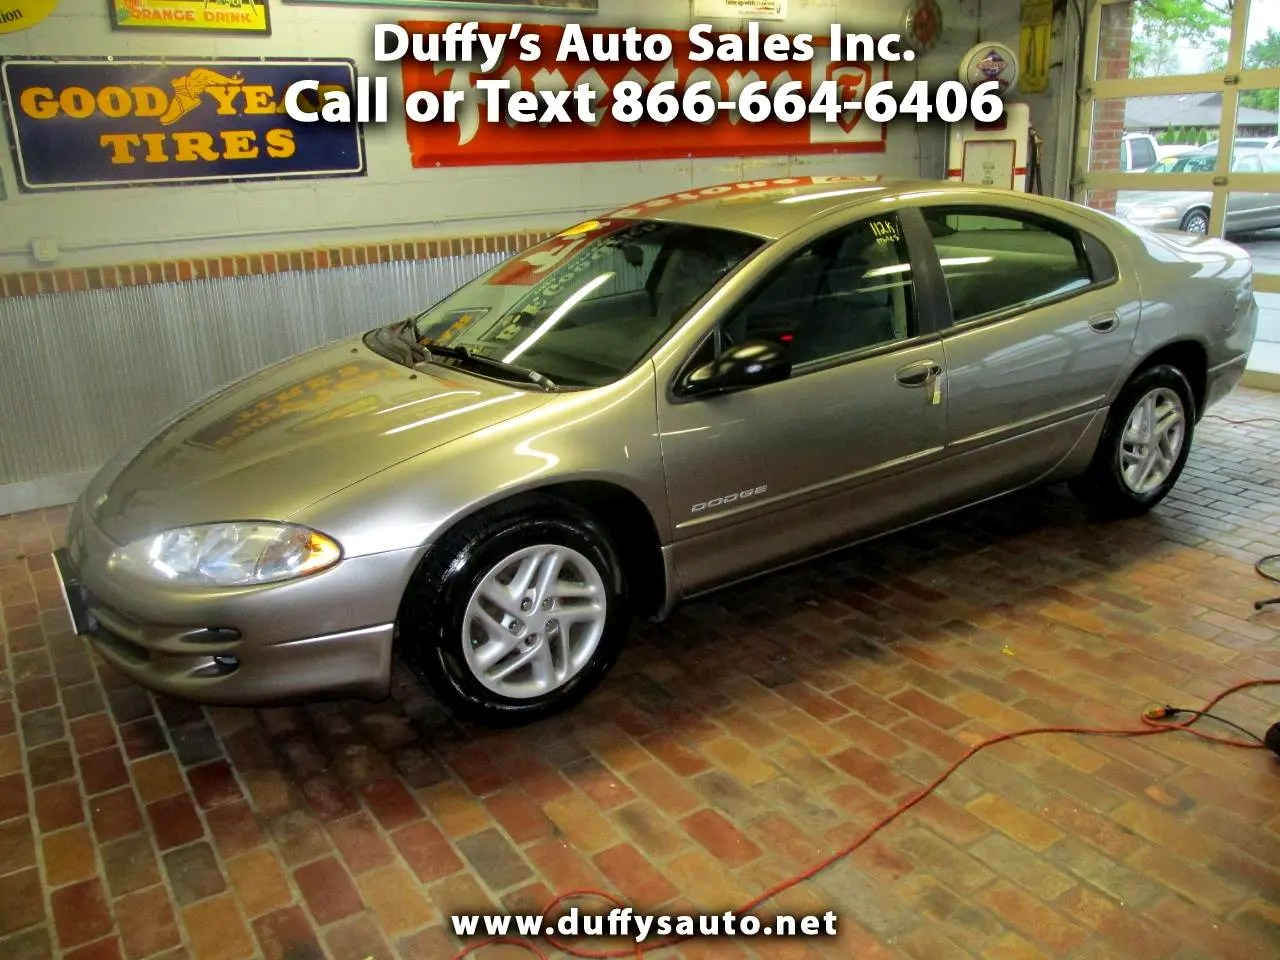 hight resolution of 1999 dodge intrepid 4dr sdn base